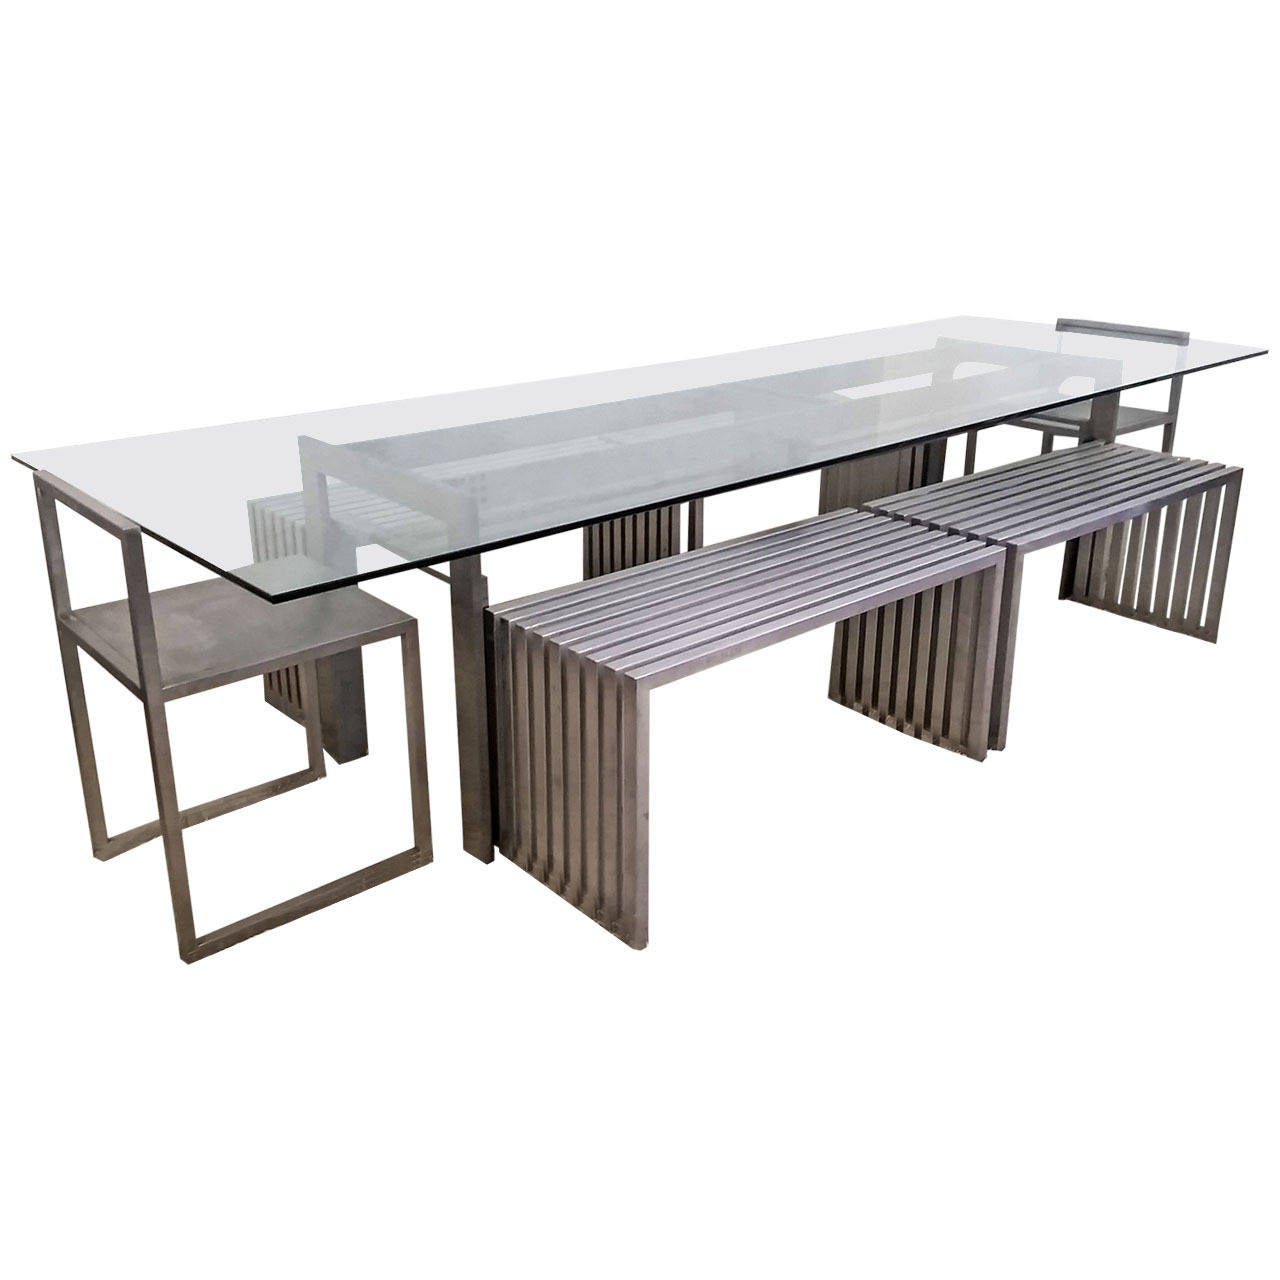 Philip Plein Steel Dining Suite with Chairs and Benches For Sale at ...